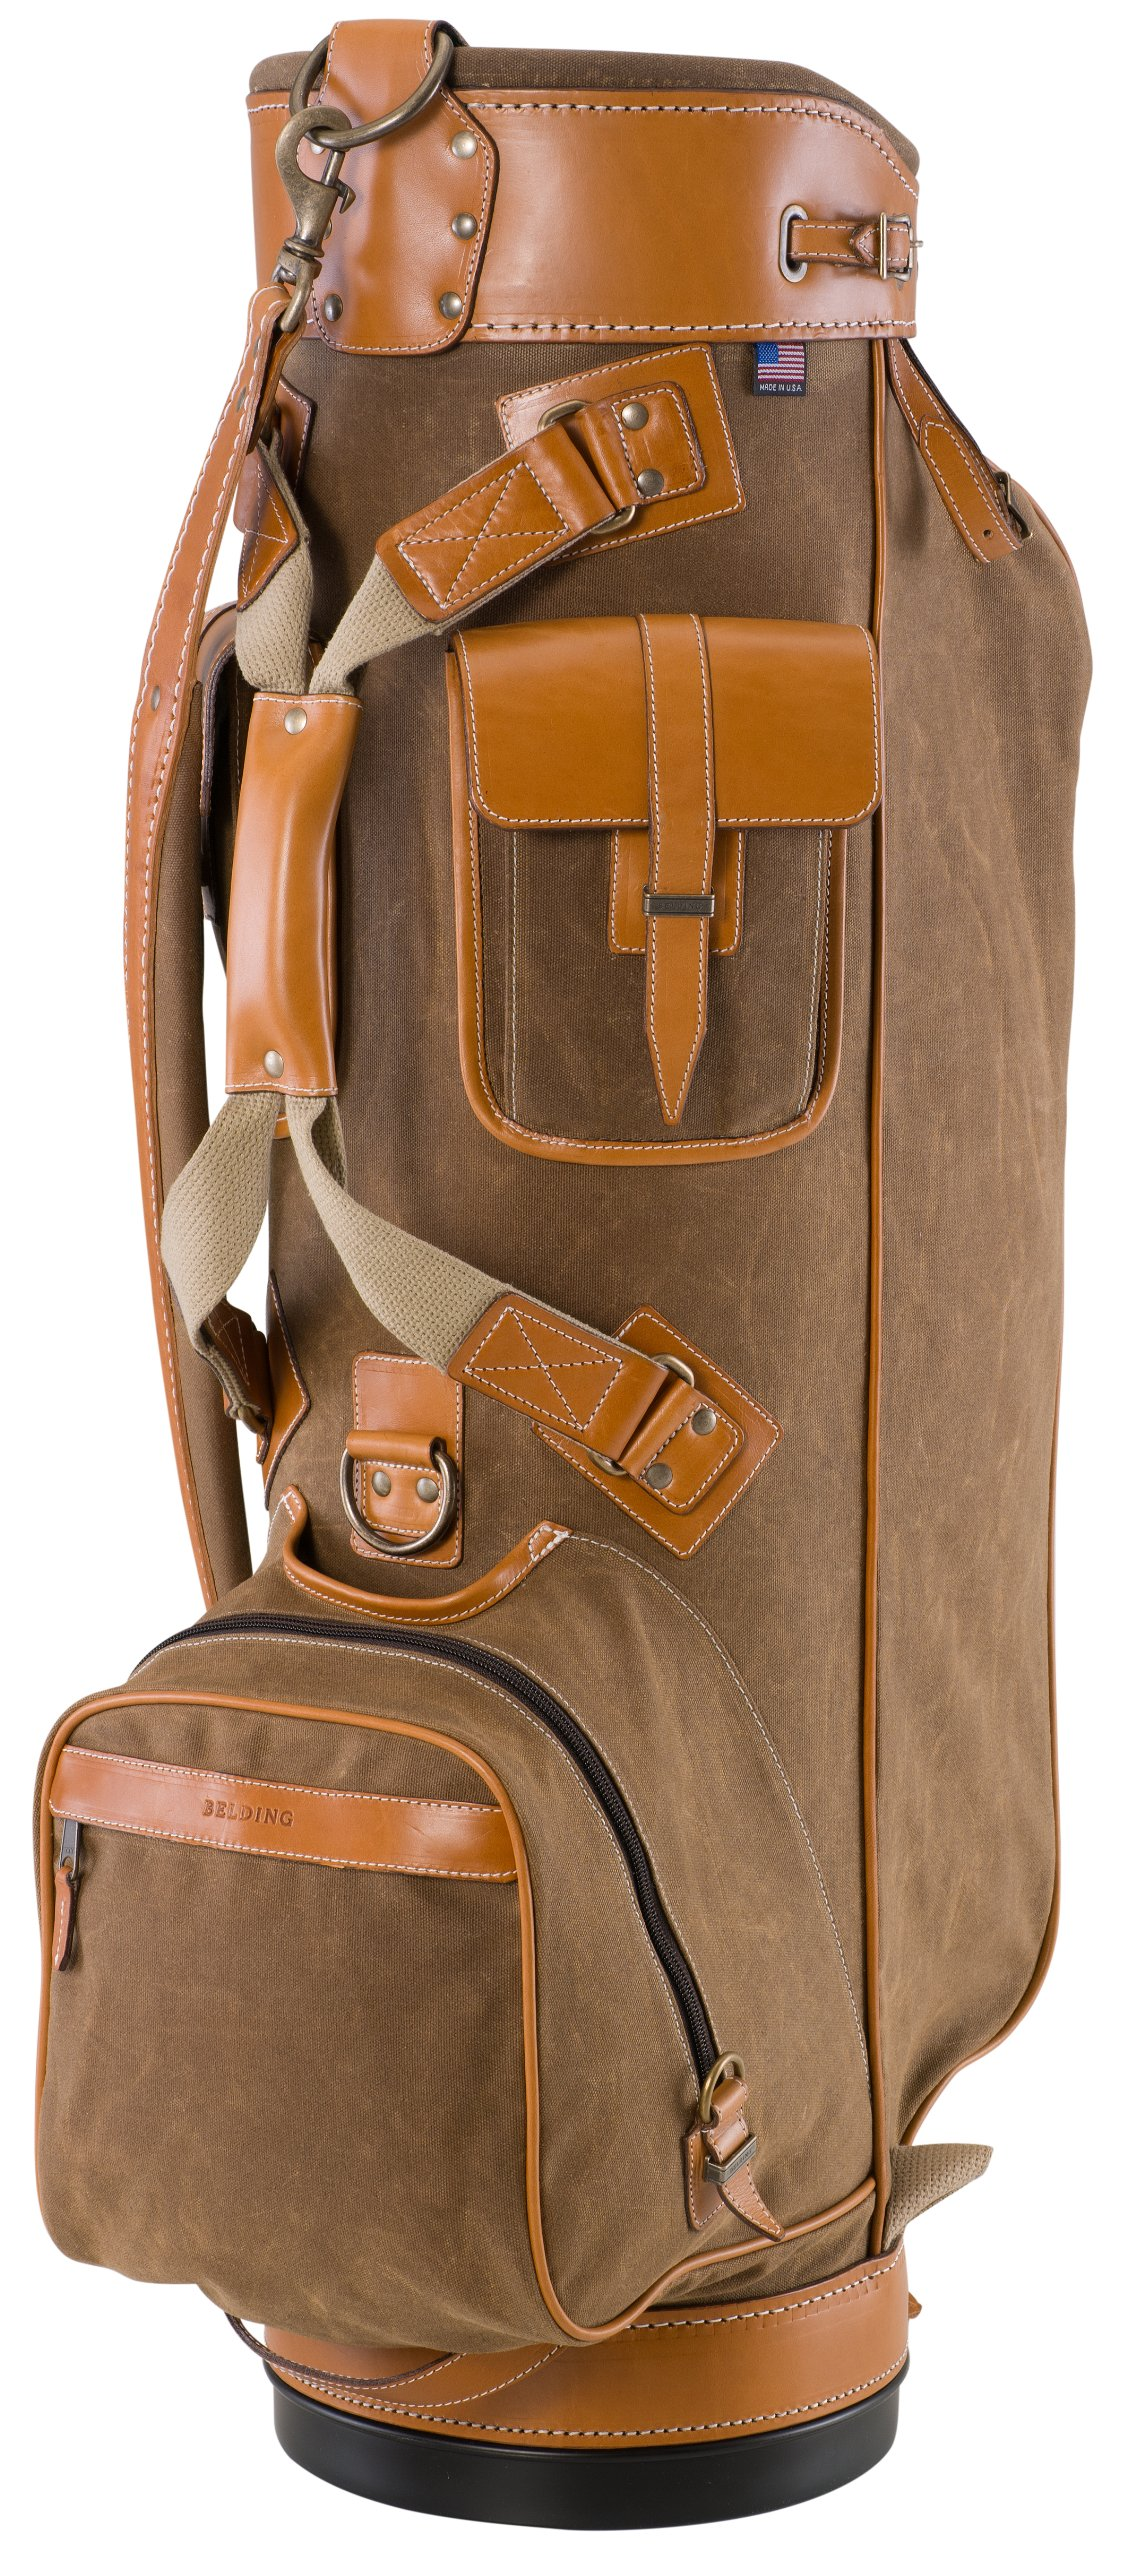 BELDING American Collection Bushwhacker Golf Bag, 9.5-Inch, Tan